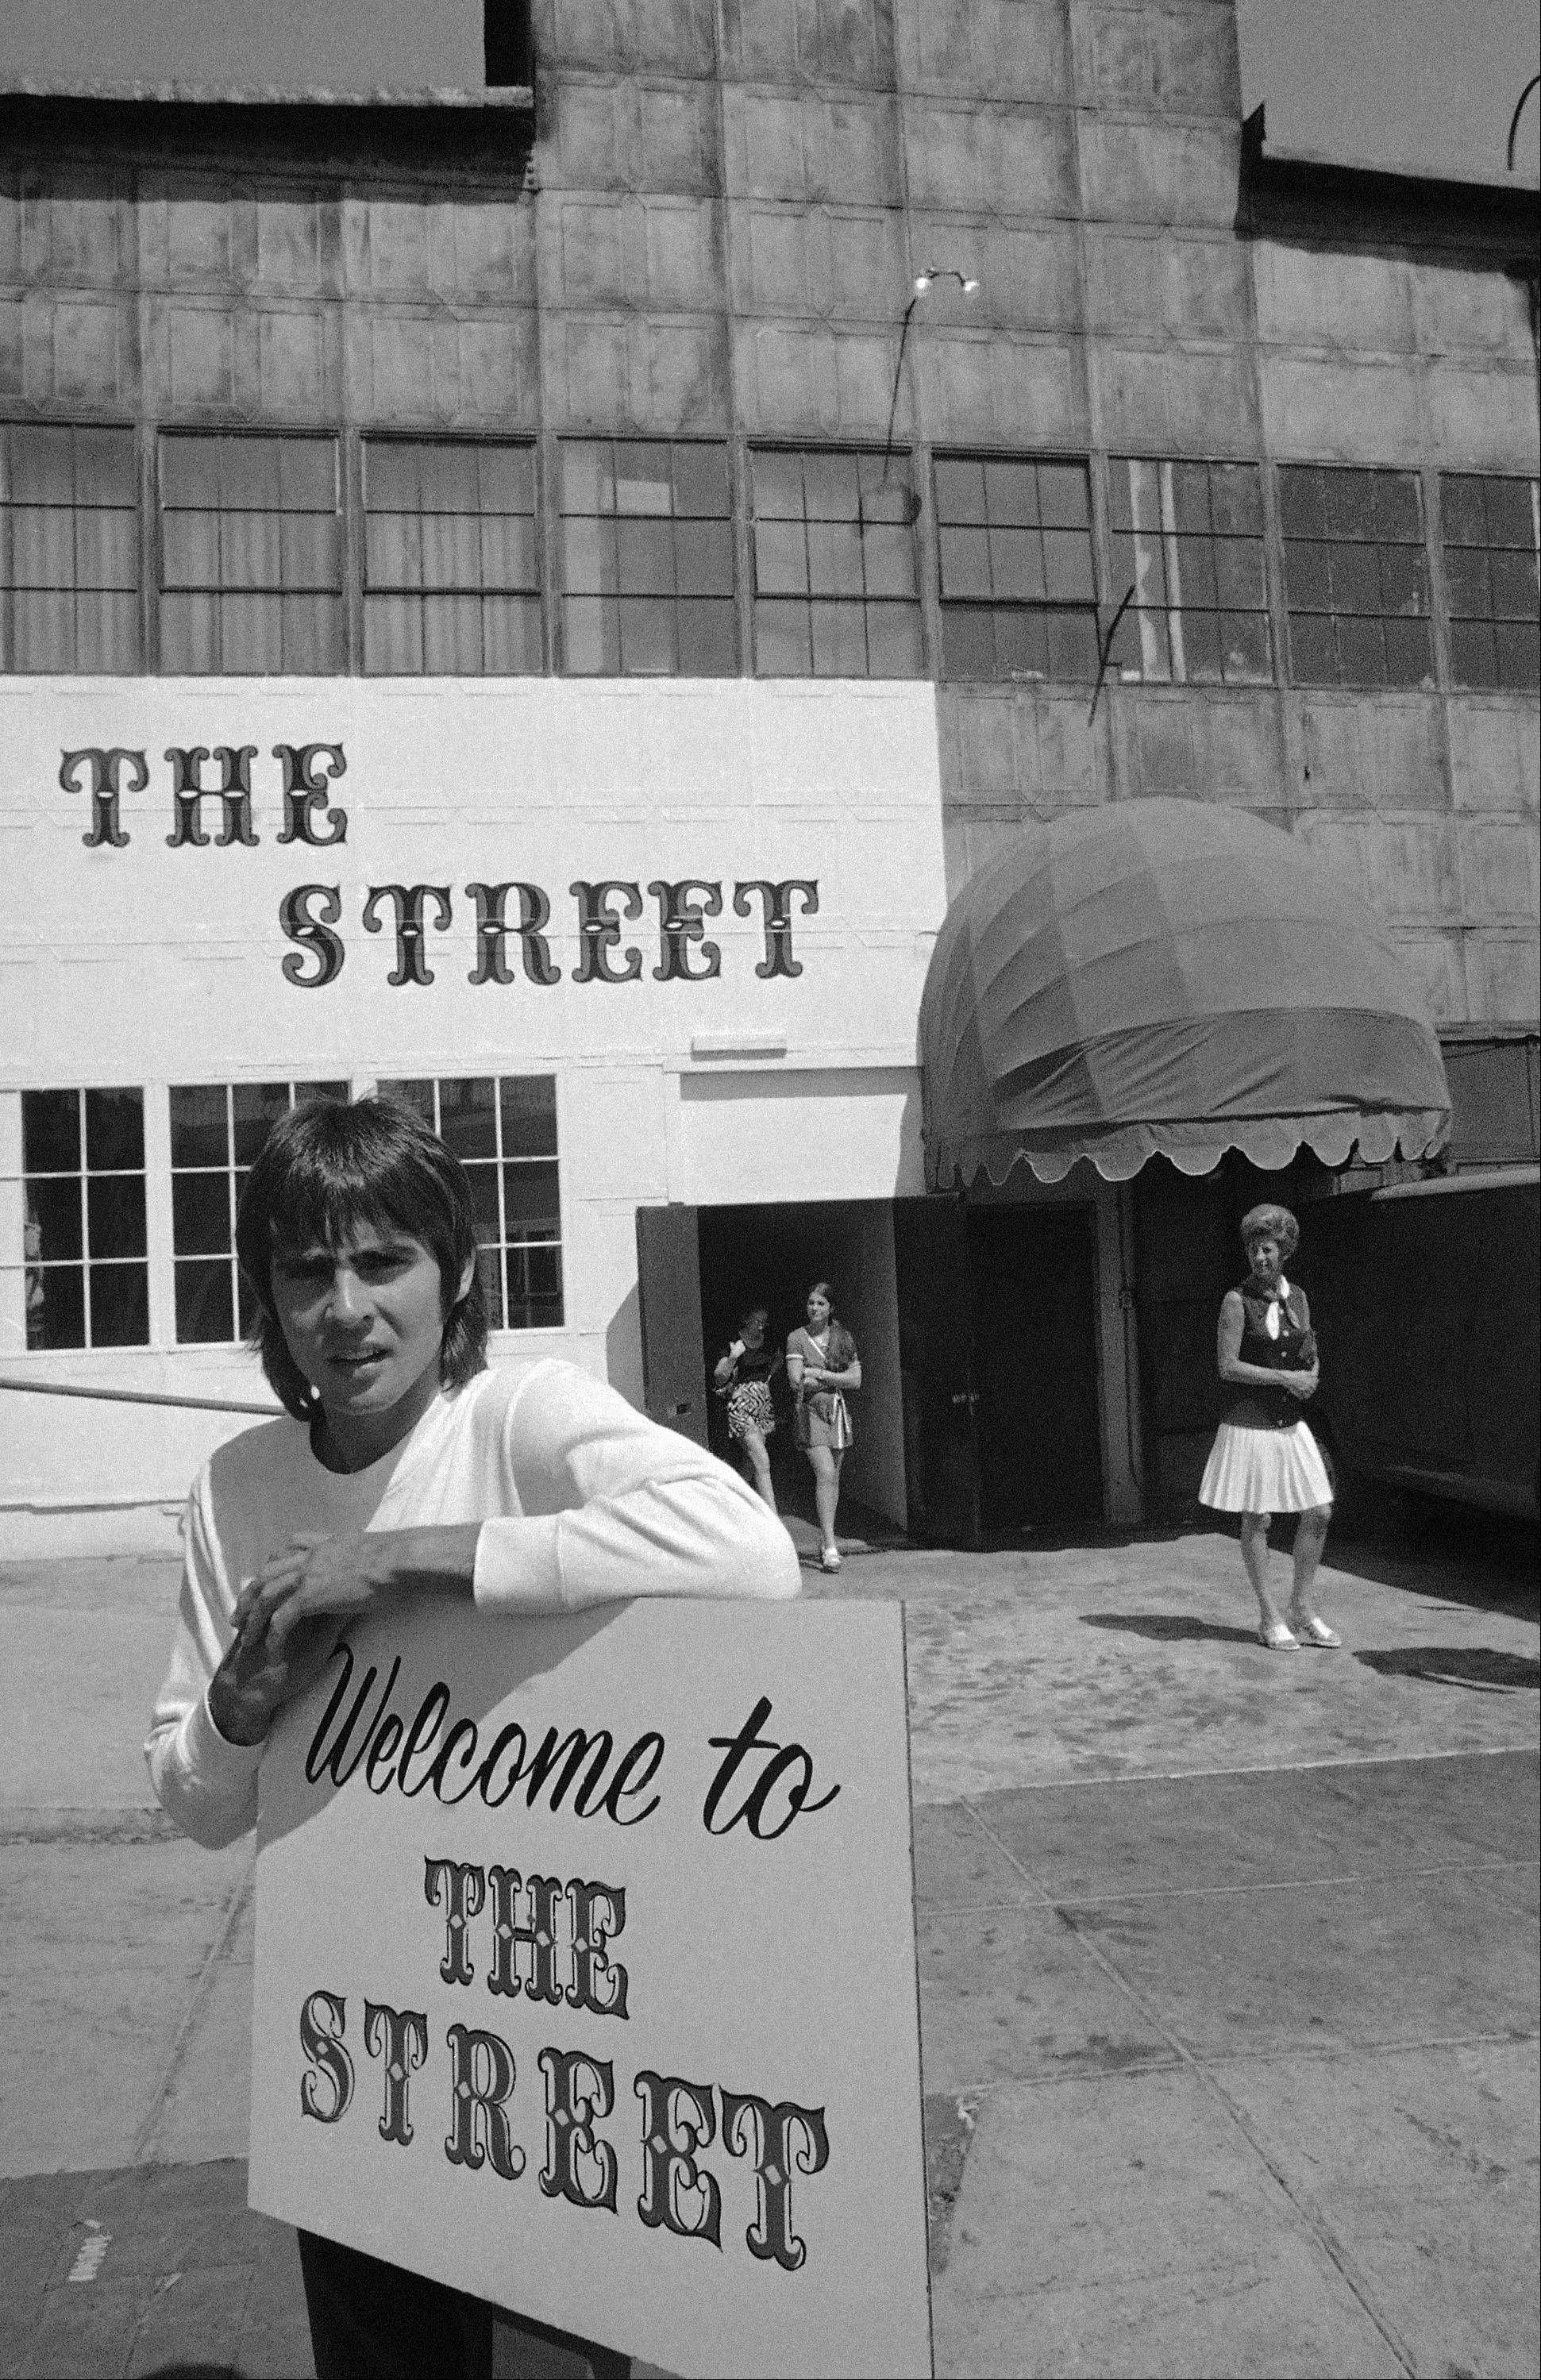 David Jones, 24, one of television's rock group, The Monkees, in a new Hollywood marketplace called The Street in Los Angeles on August 5, 1970, which he originated to help young craftsmen display and sell their products.